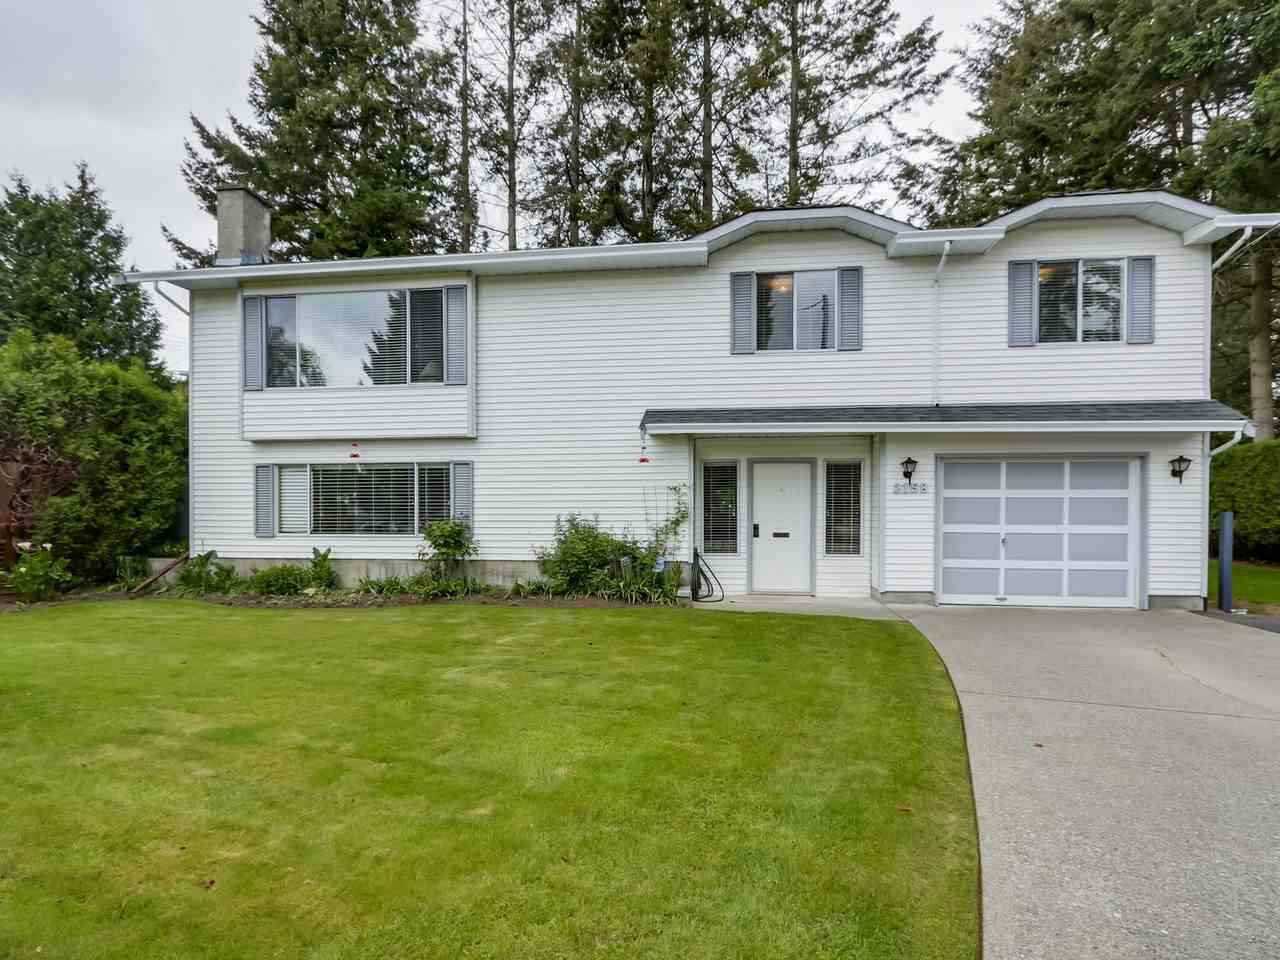 Main Photo: 2158 BOWLER Drive in Surrey: King George Corridor House for sale (South Surrey White Rock)  : MLS®# R2128949